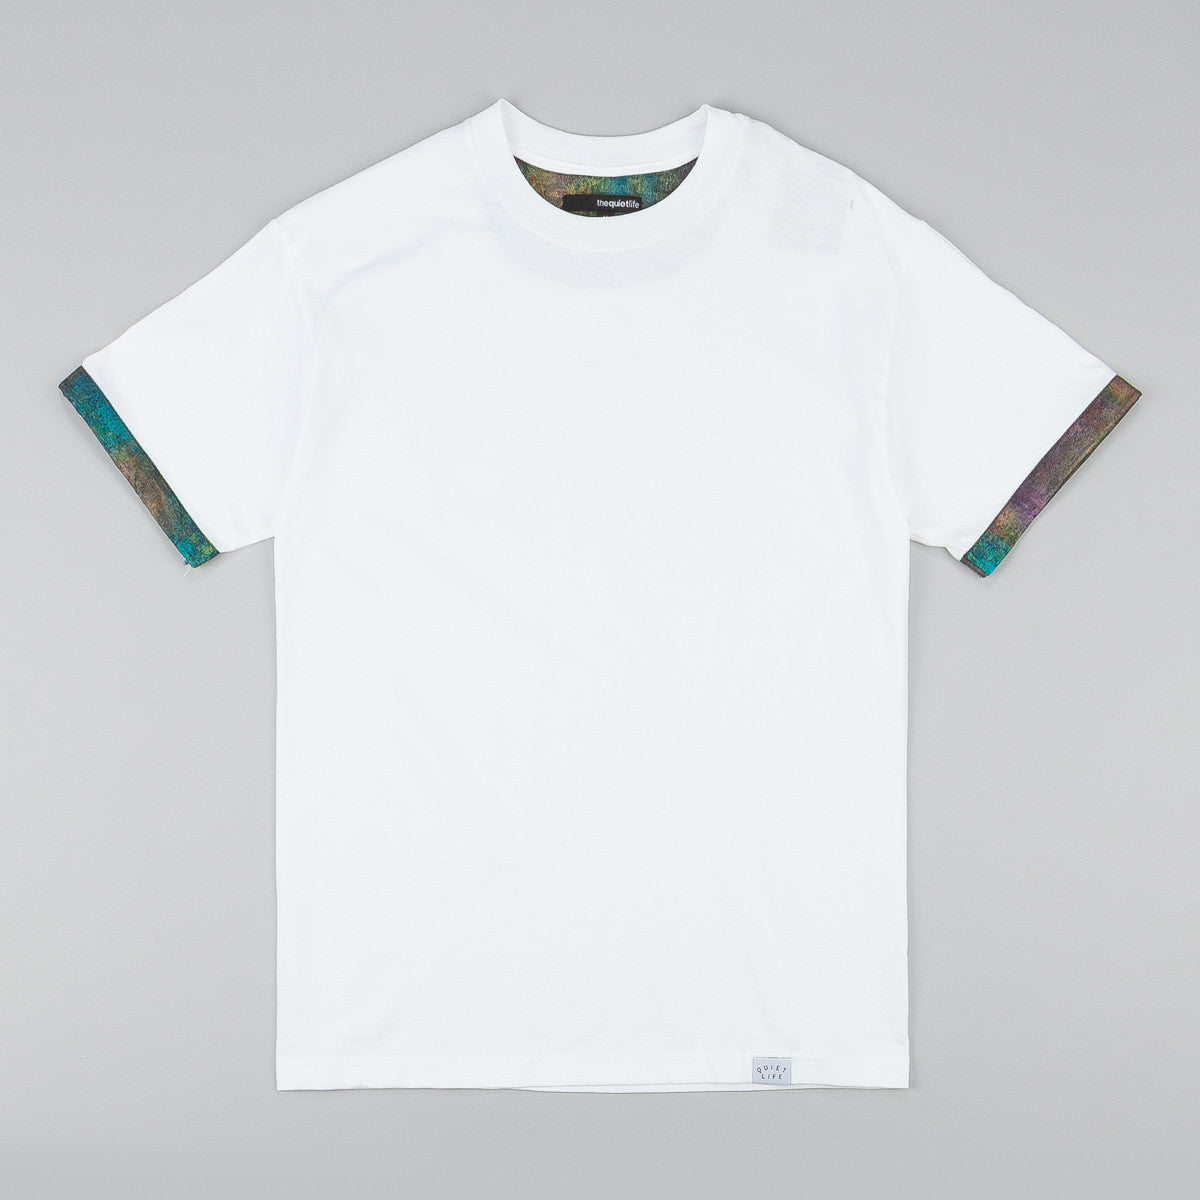 The Quiet Life Tamsyn Cuff T-Shirt